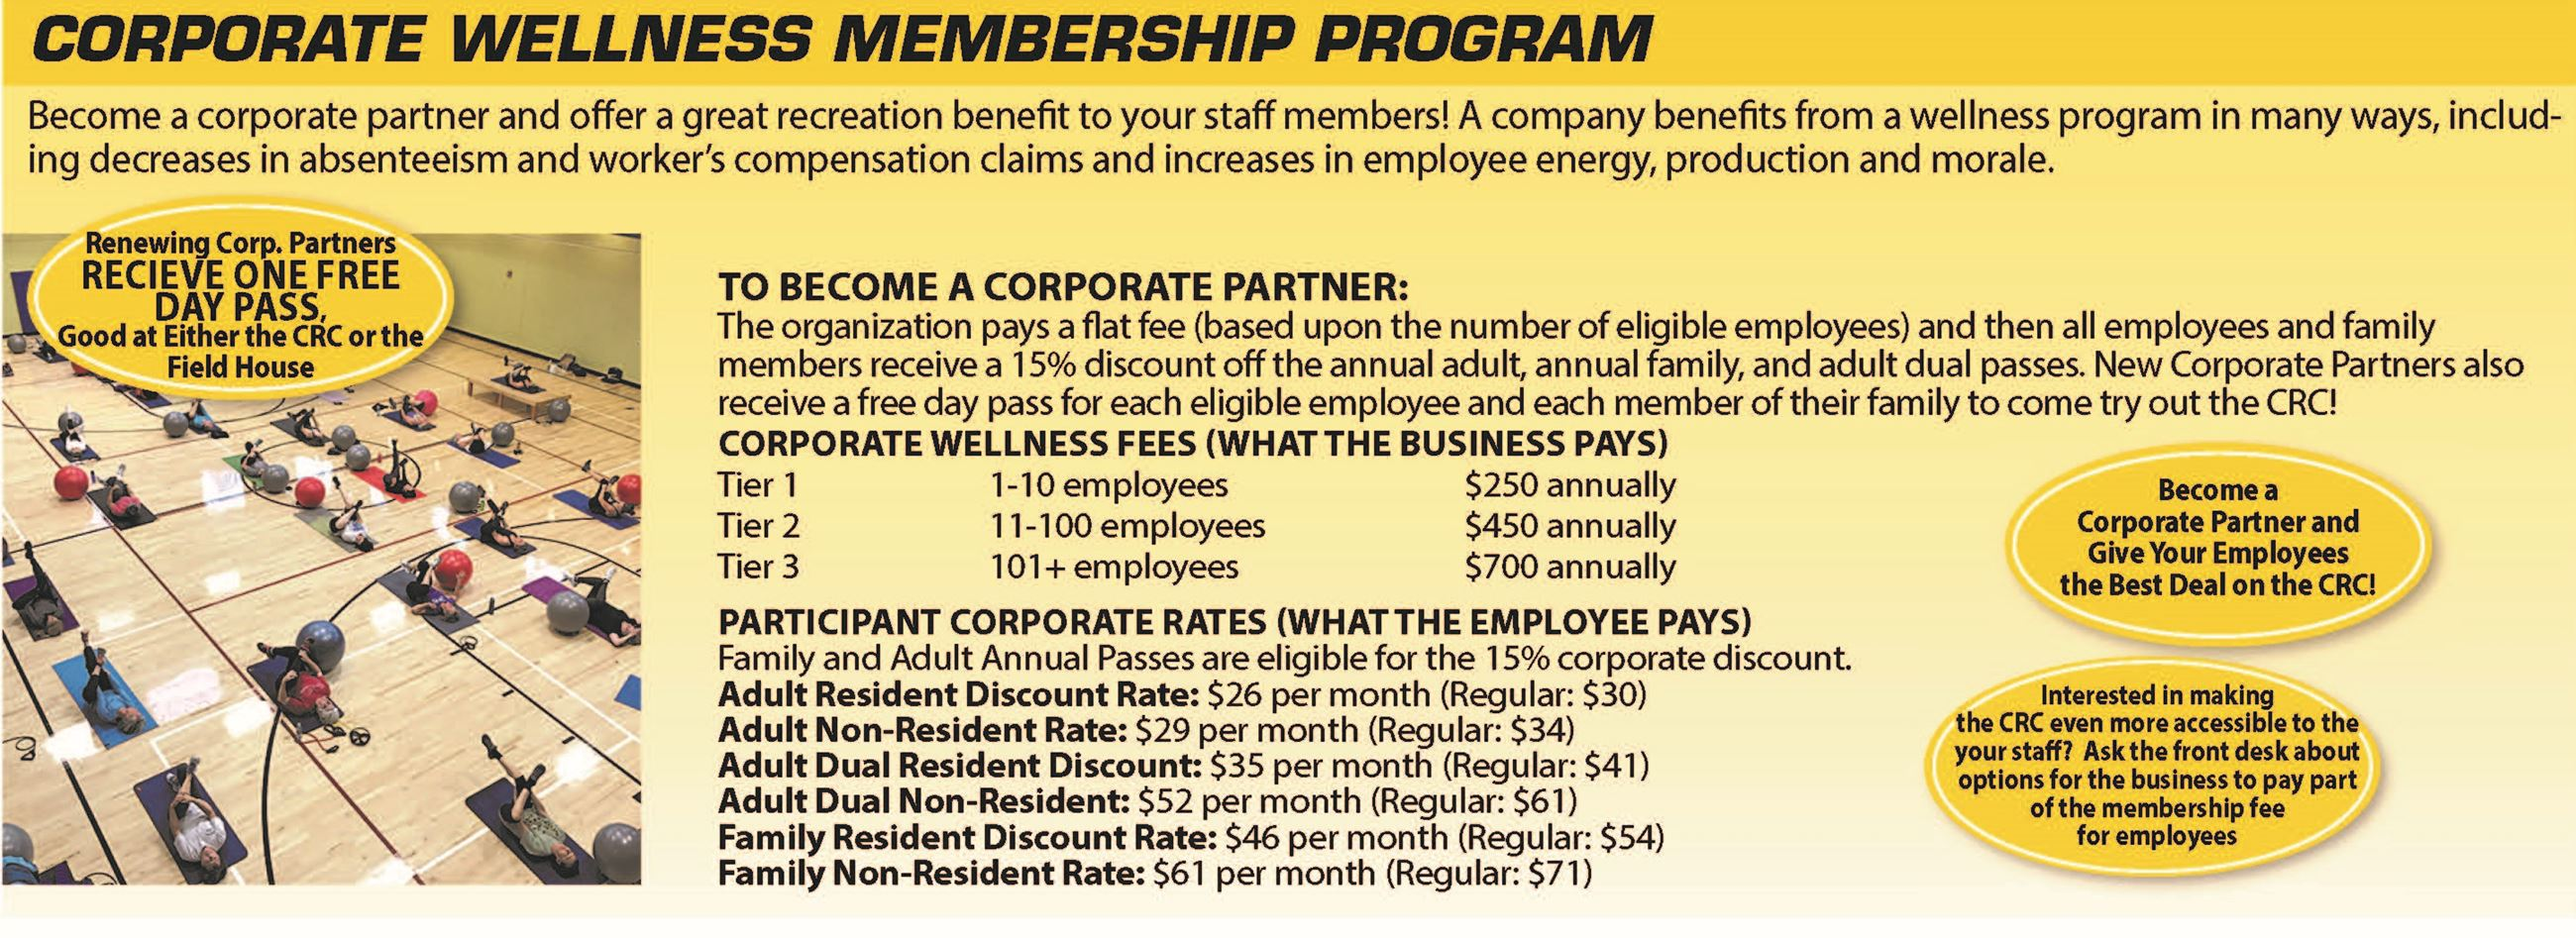 Corporate Partner Annual Pass Information